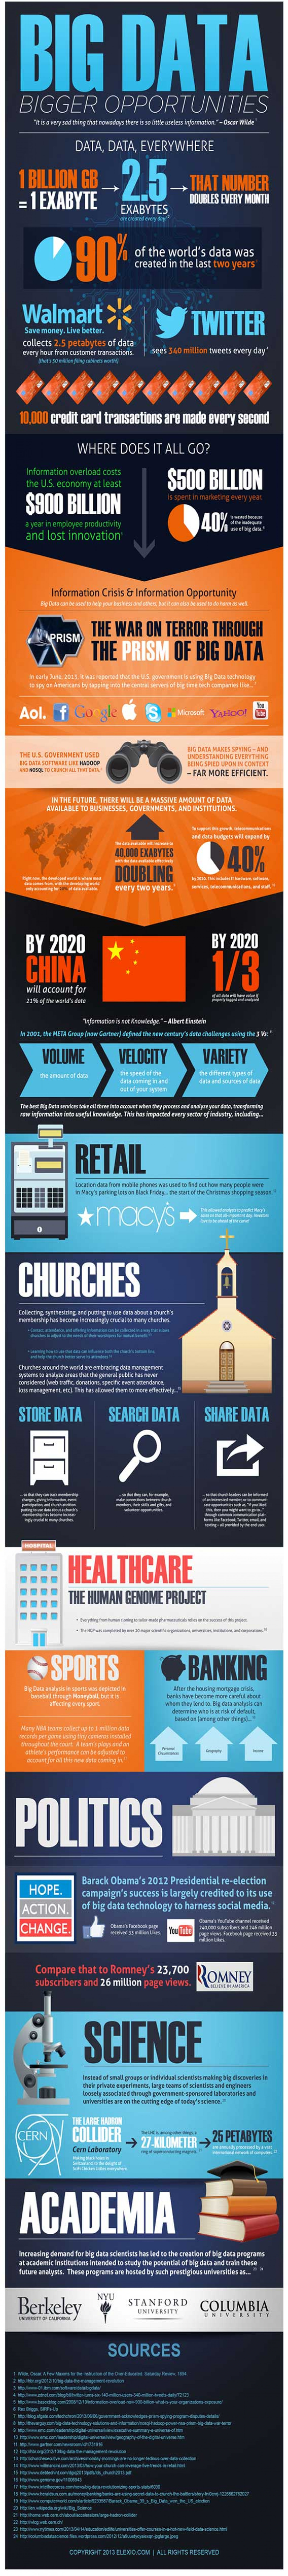 Big Data Brings Bigger Opportunities Infographic